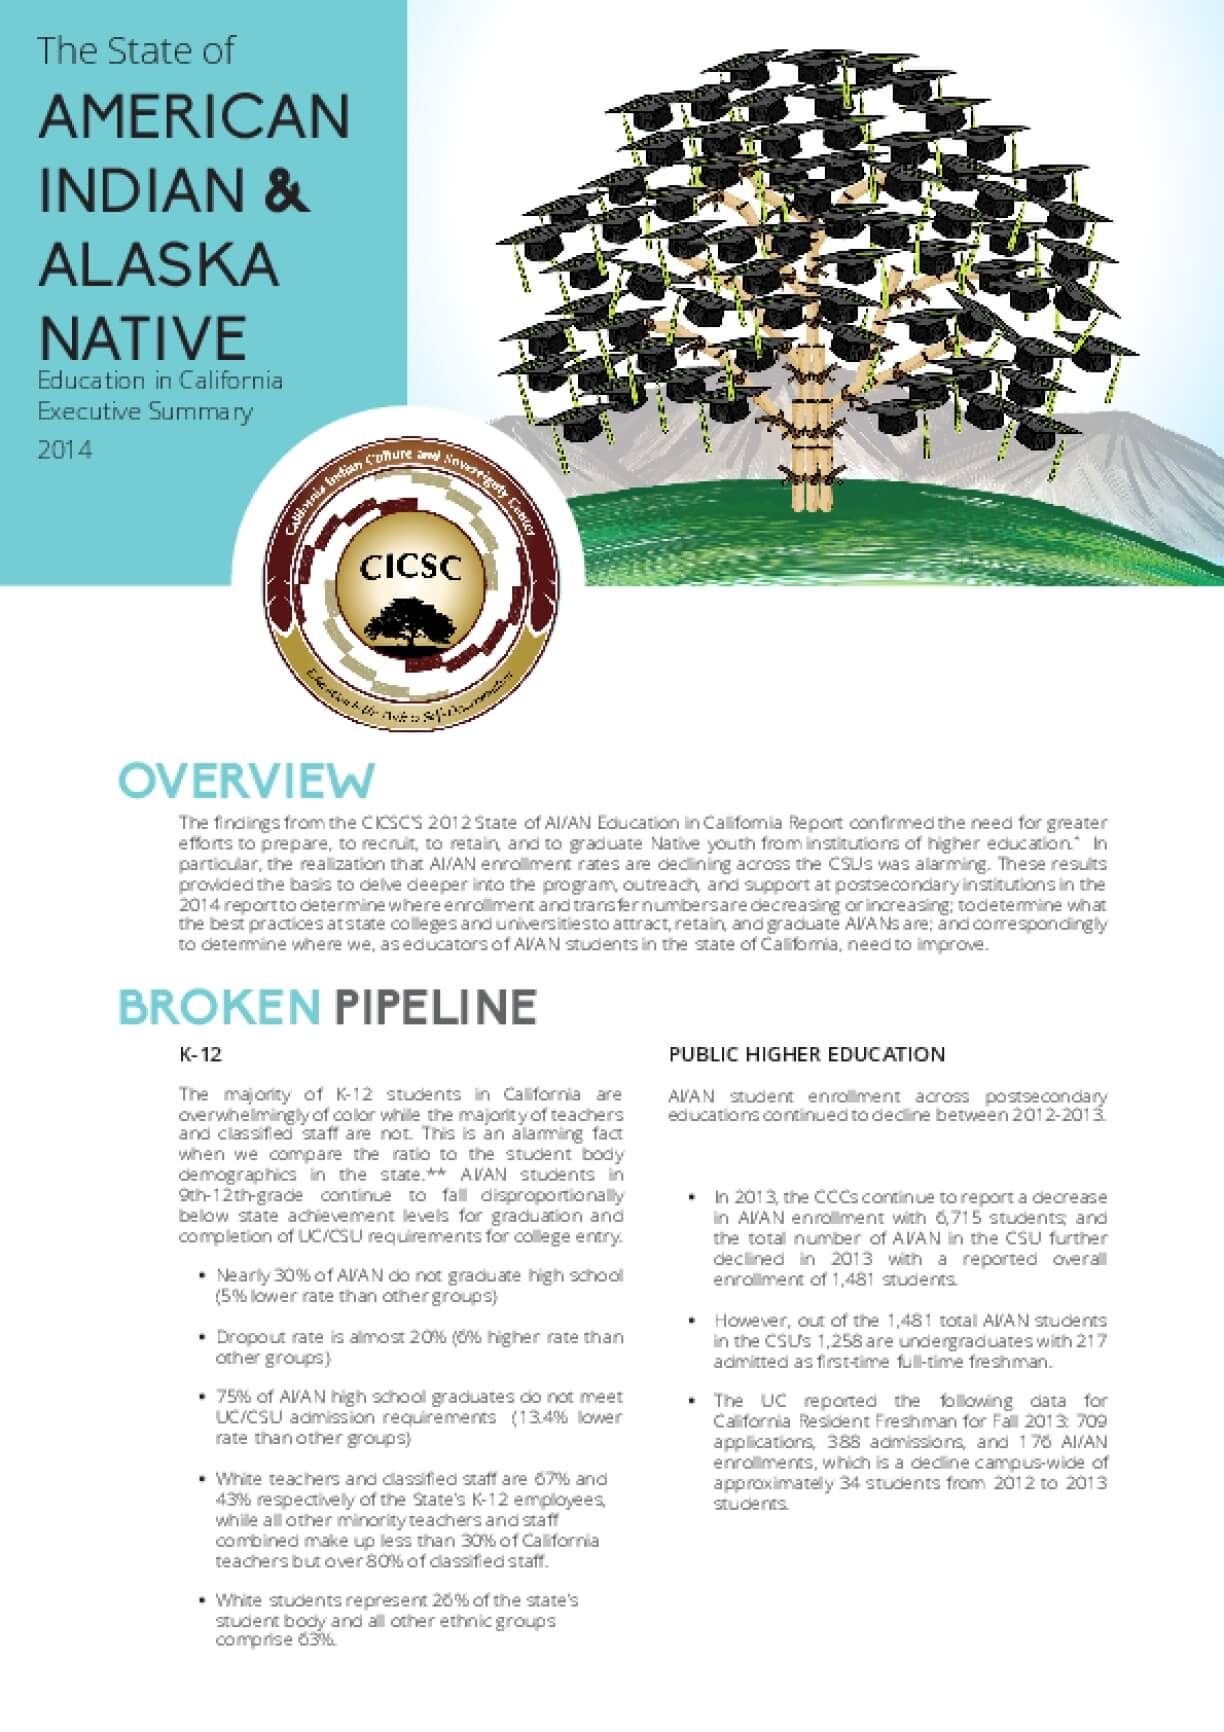 The State of American Indian & Alaska Native Education in California, Executive Summary 2014